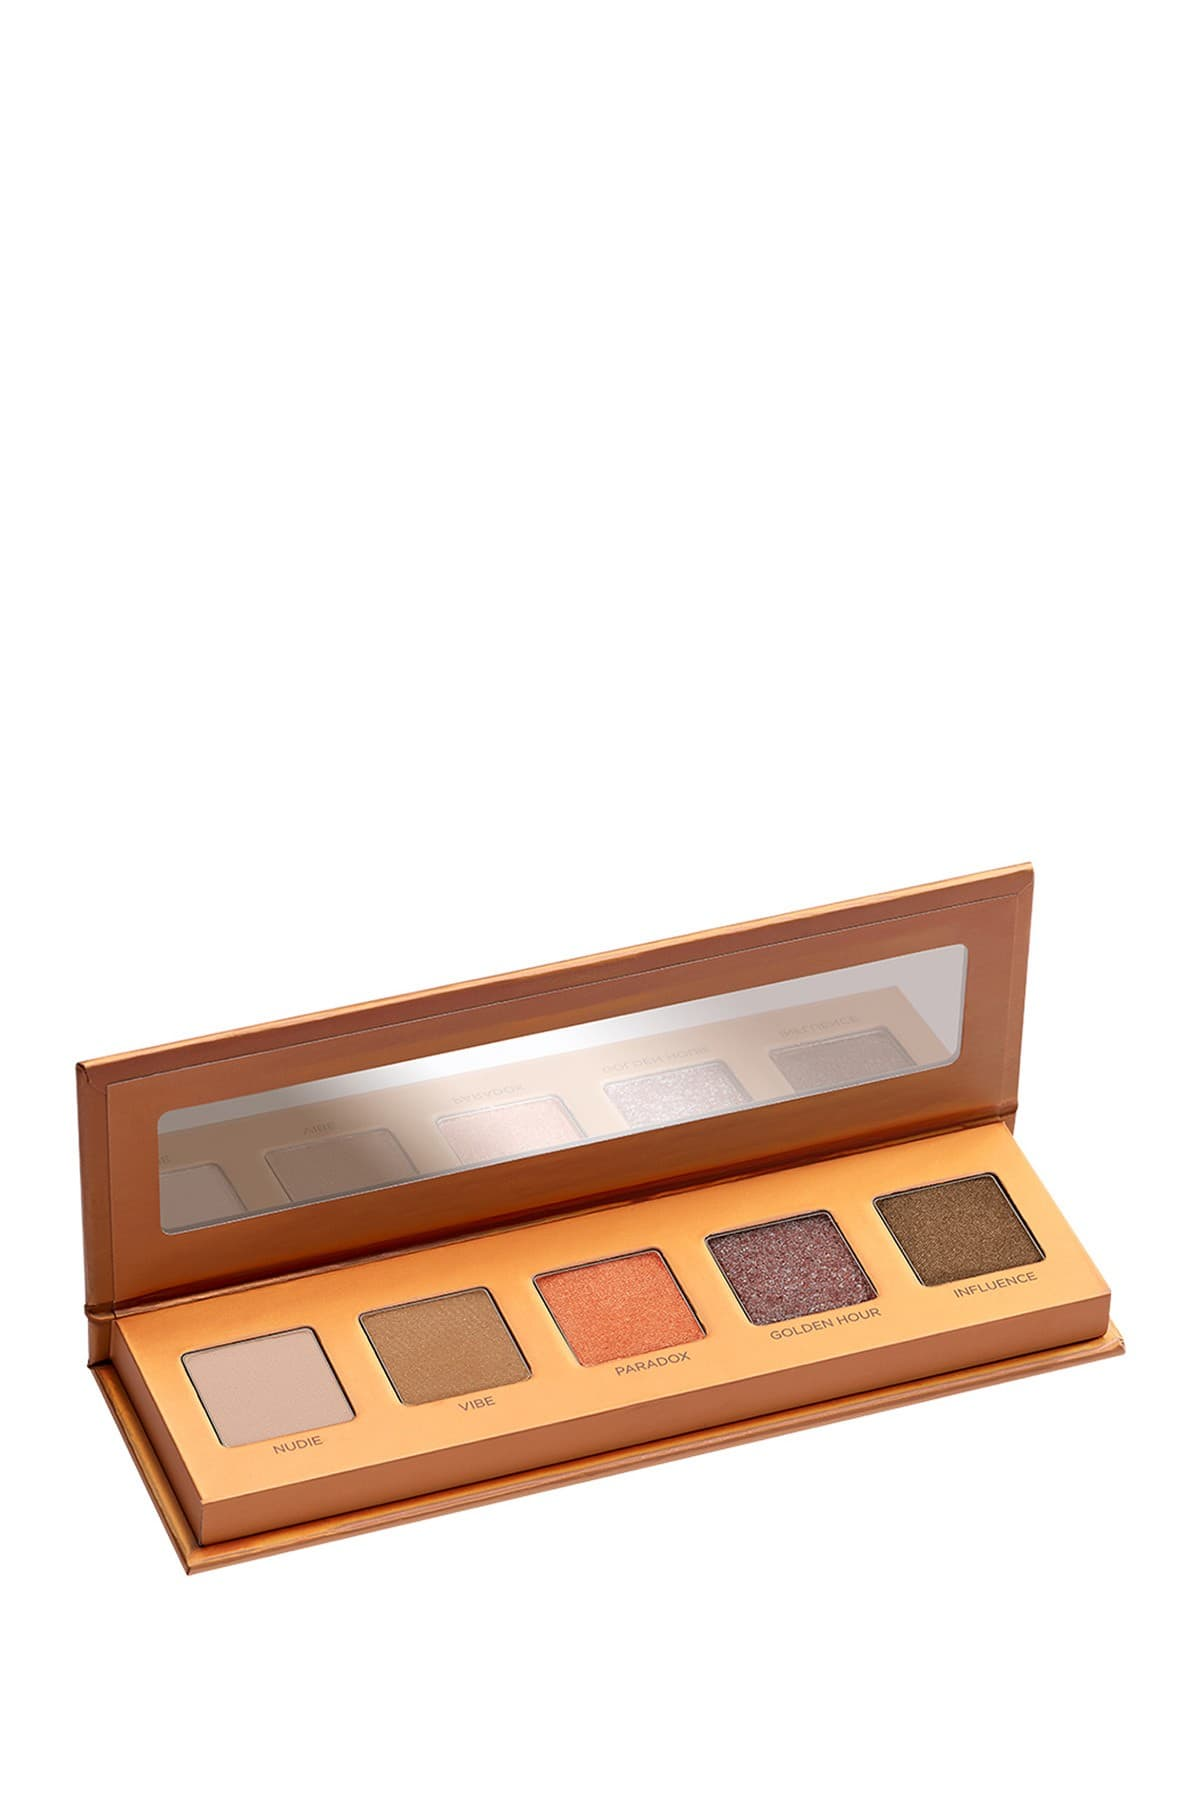 Urban Decay Light Beam 5-Color Eyeshadow Palette for $3.74